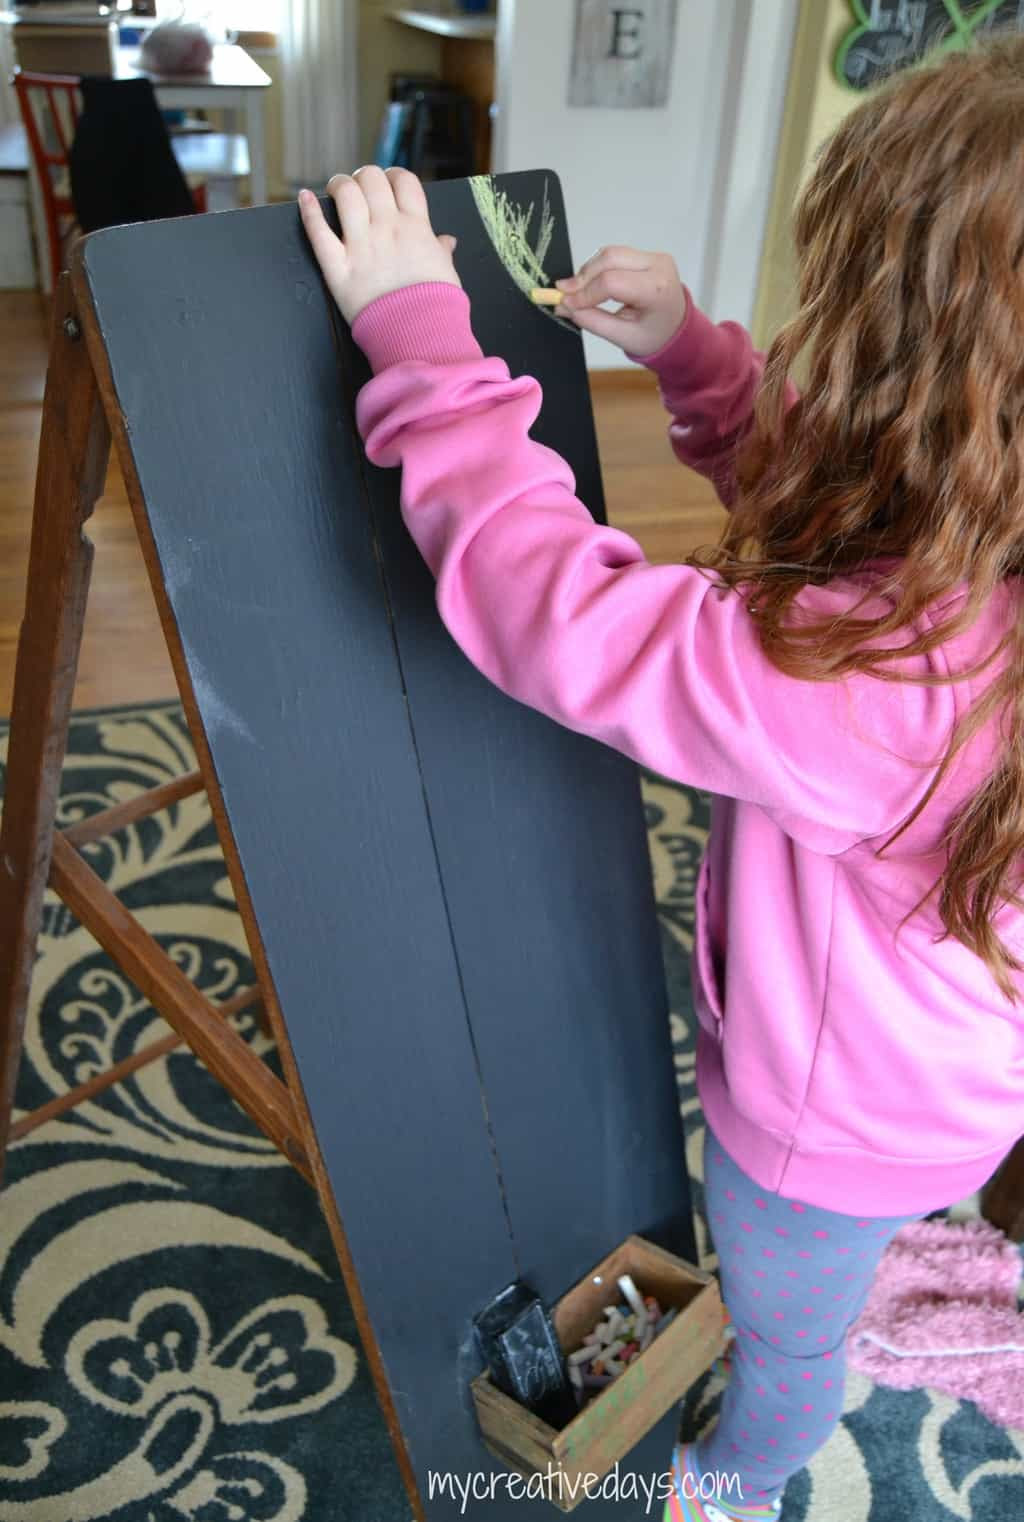 Repurposed Iron Board To Chalkboard mycreativedays.com